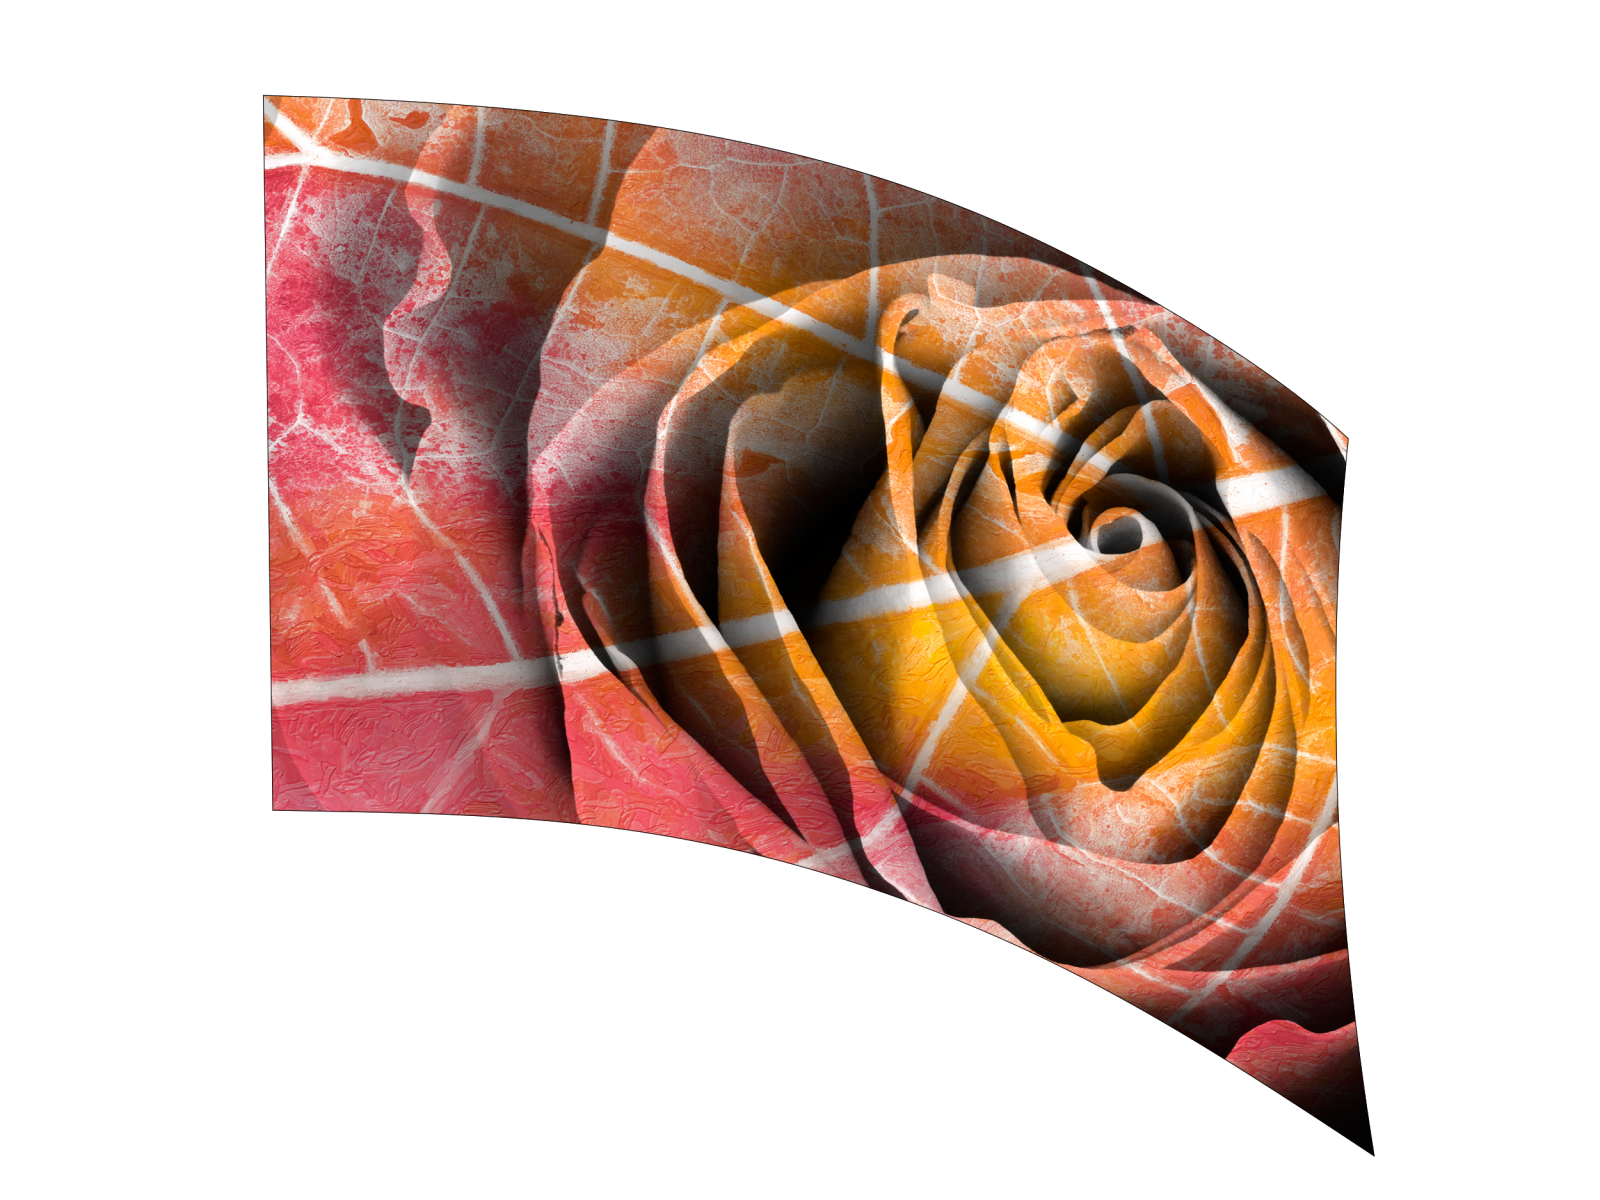 070209s - 36x52 Standard Pastel Decay Rose